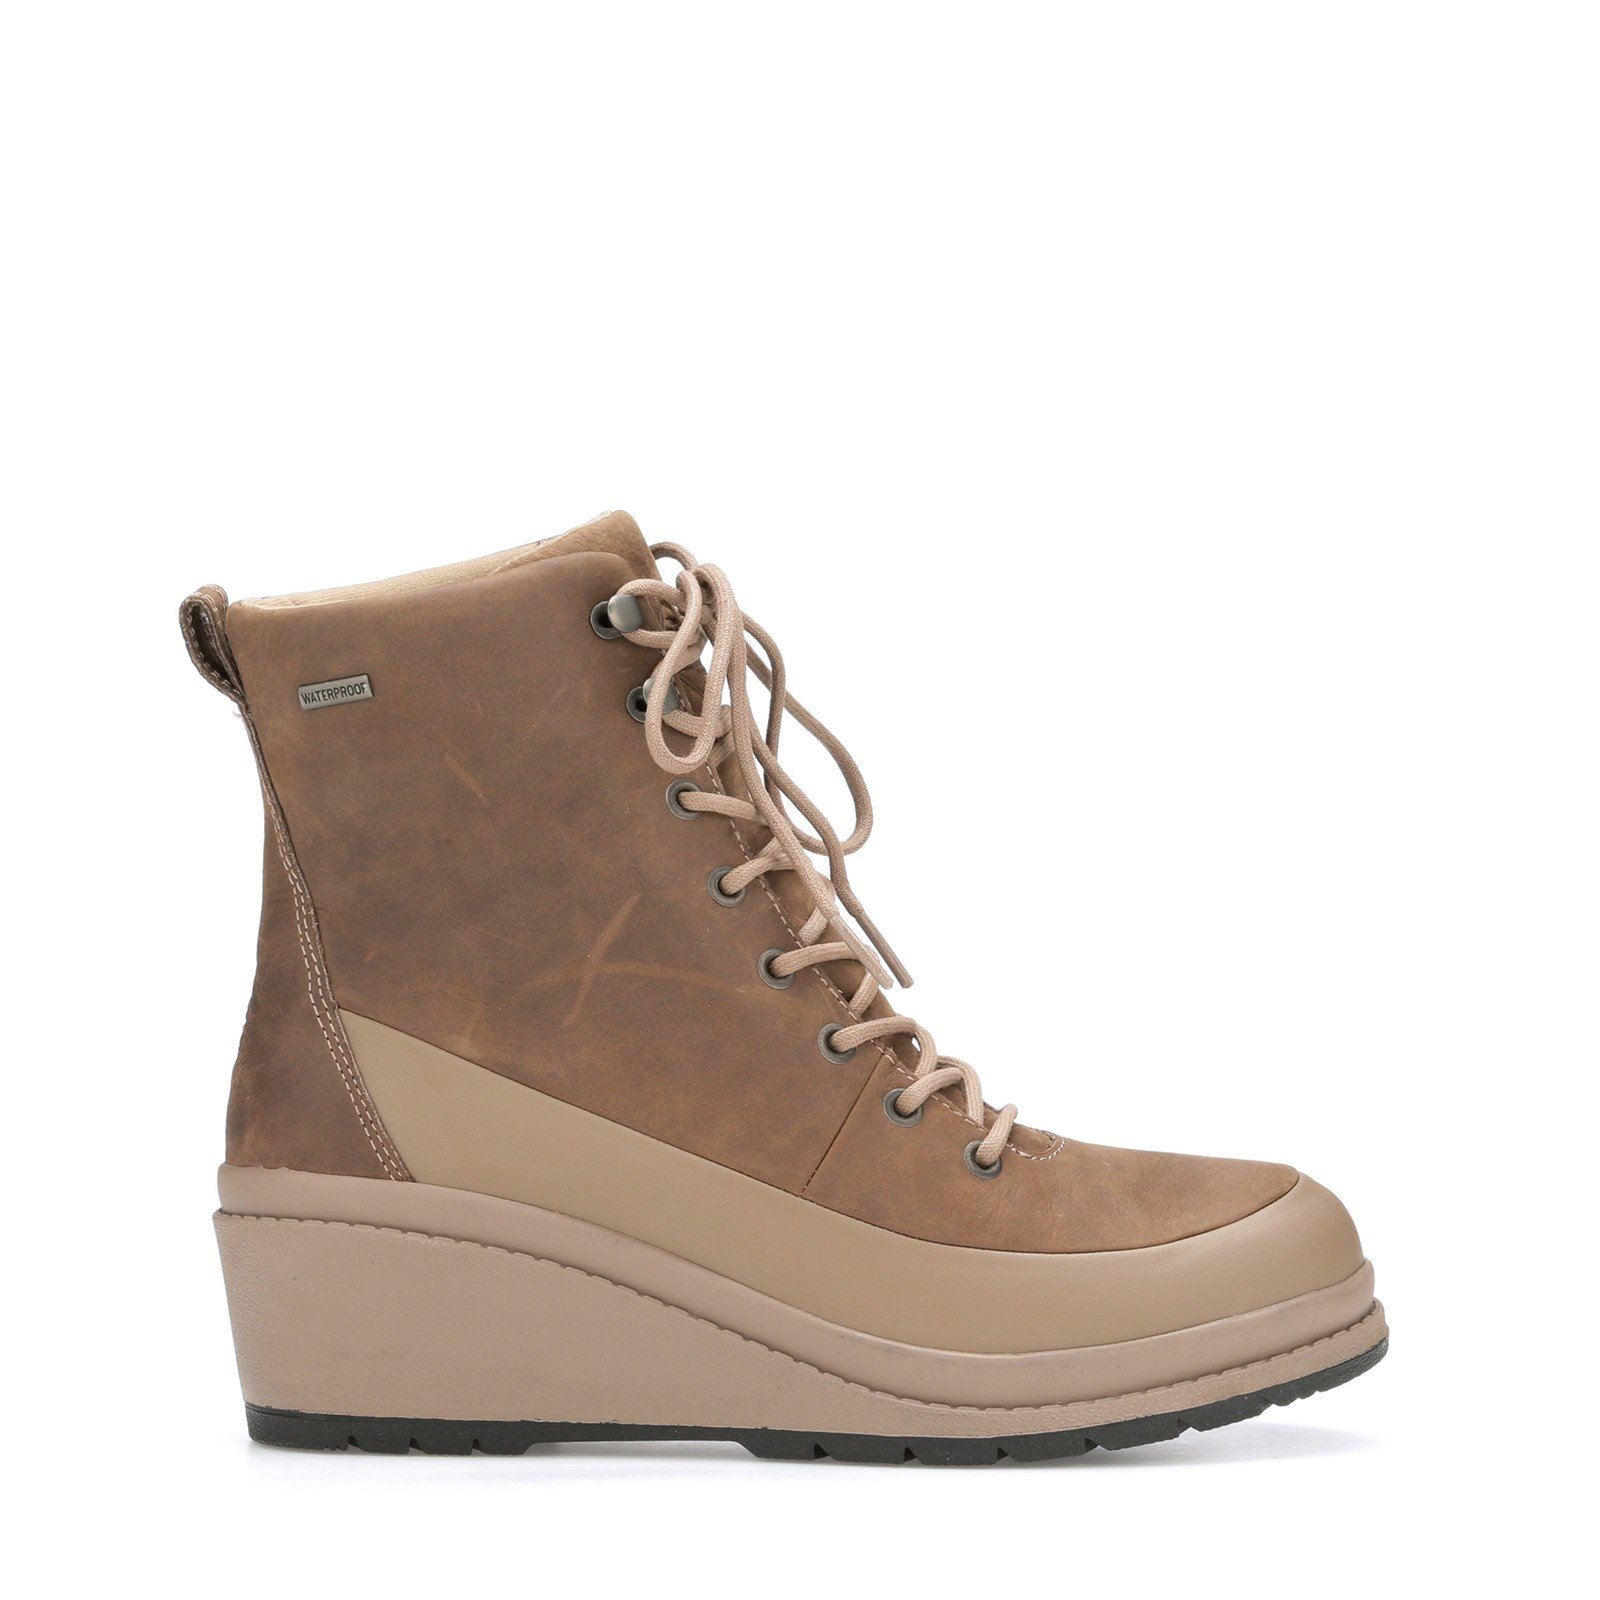 Muck Boots Women's Liberty Leather Ankle Boots Various Colours 31813 - Taupe 3